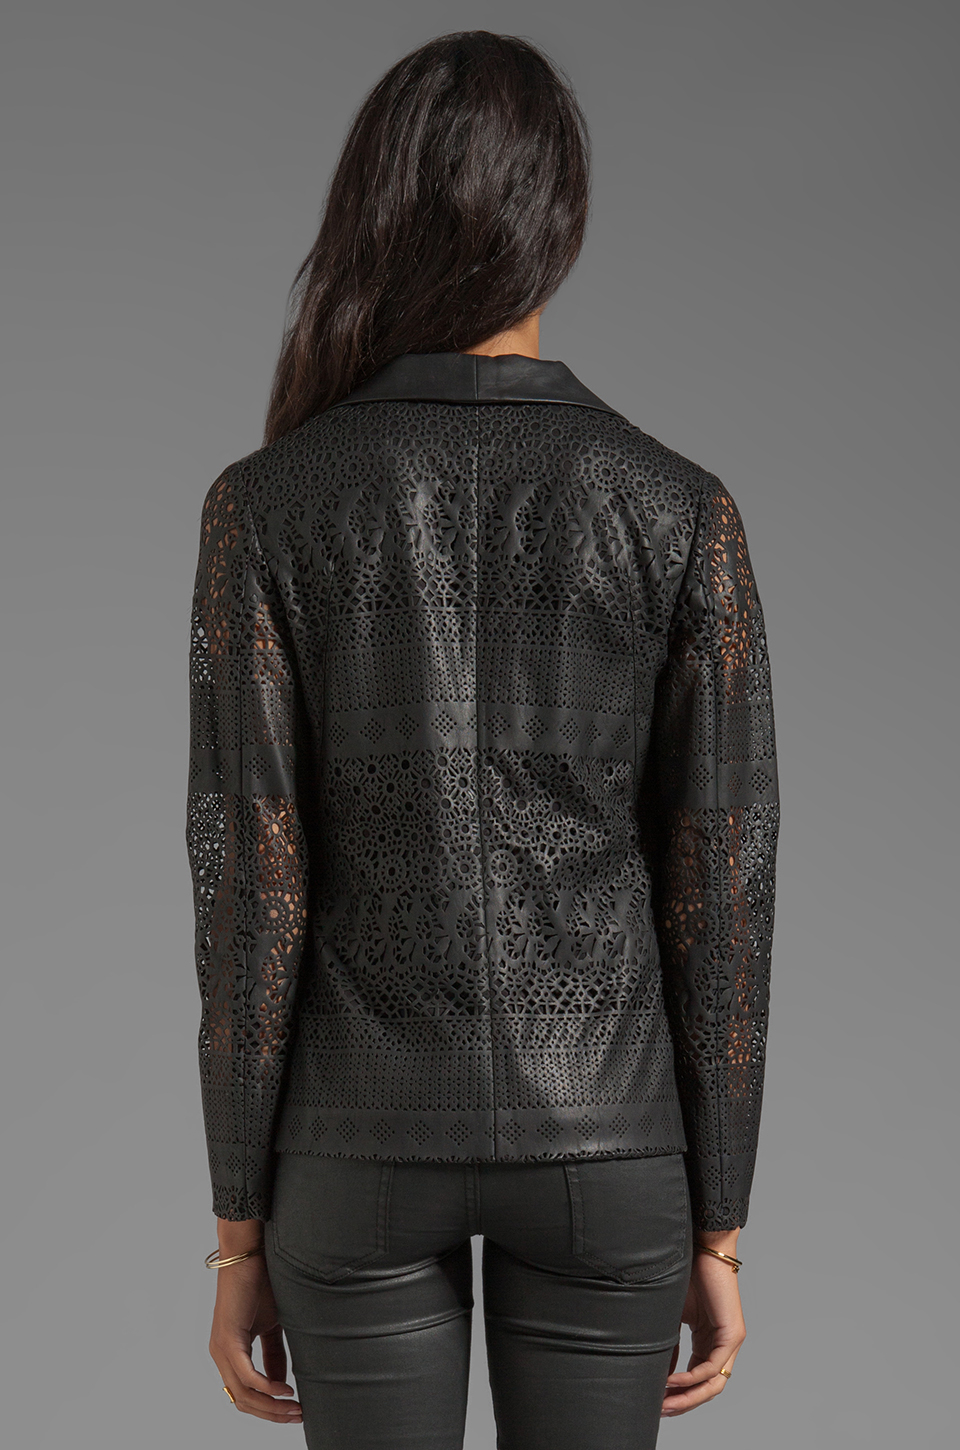 Lyst Dolce Vita Tacey Laser Cut Faux Leather Blazer In